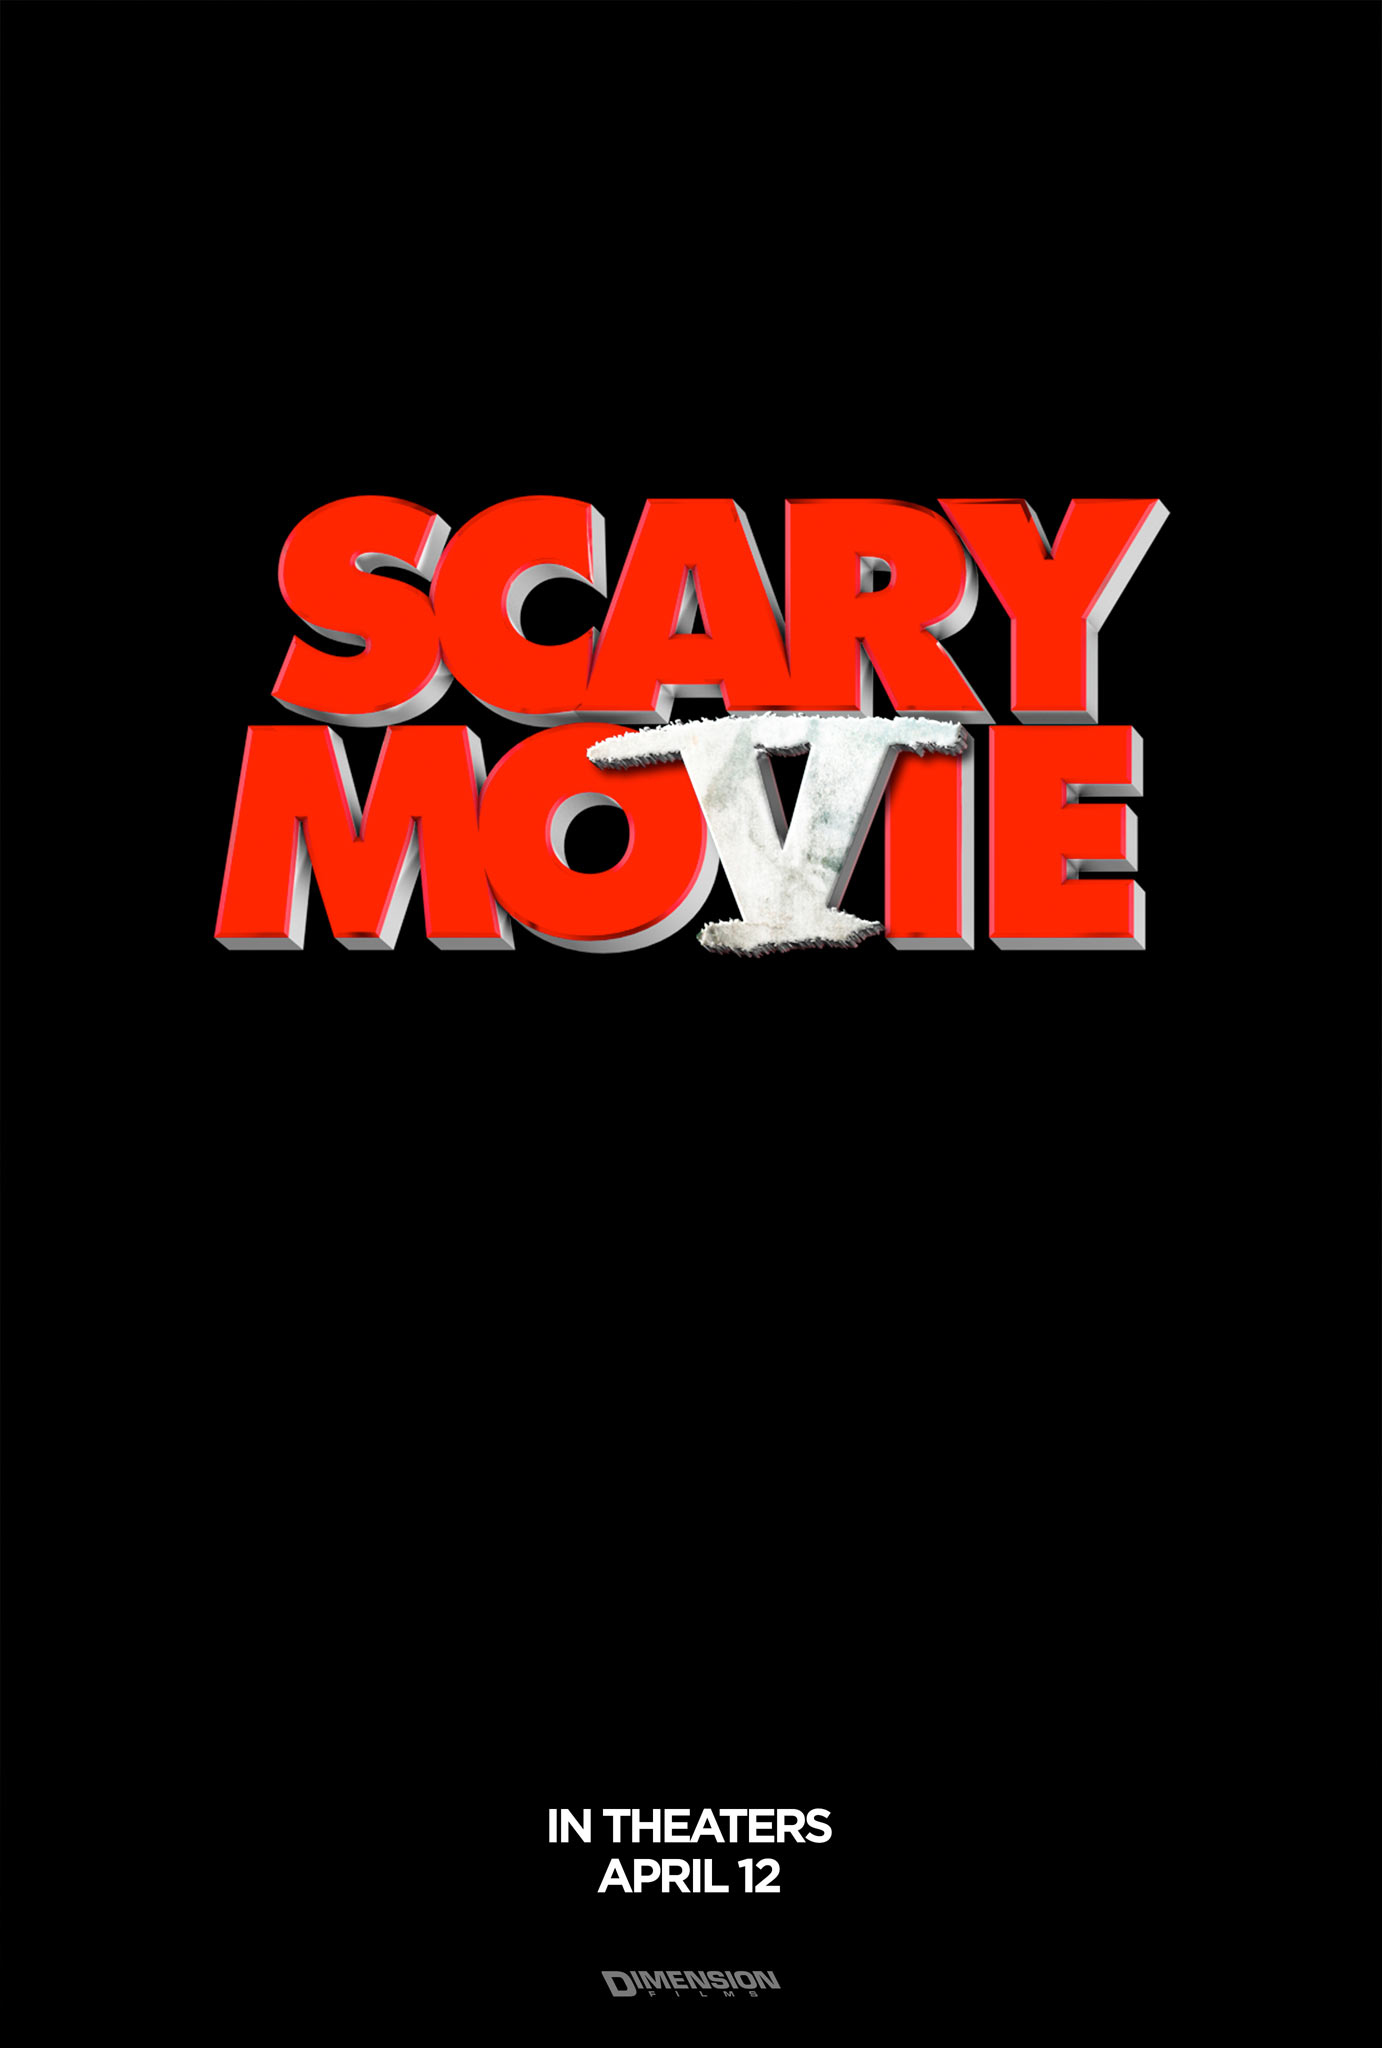 Scary Movie 5 - Movie Poster #1 (Original)